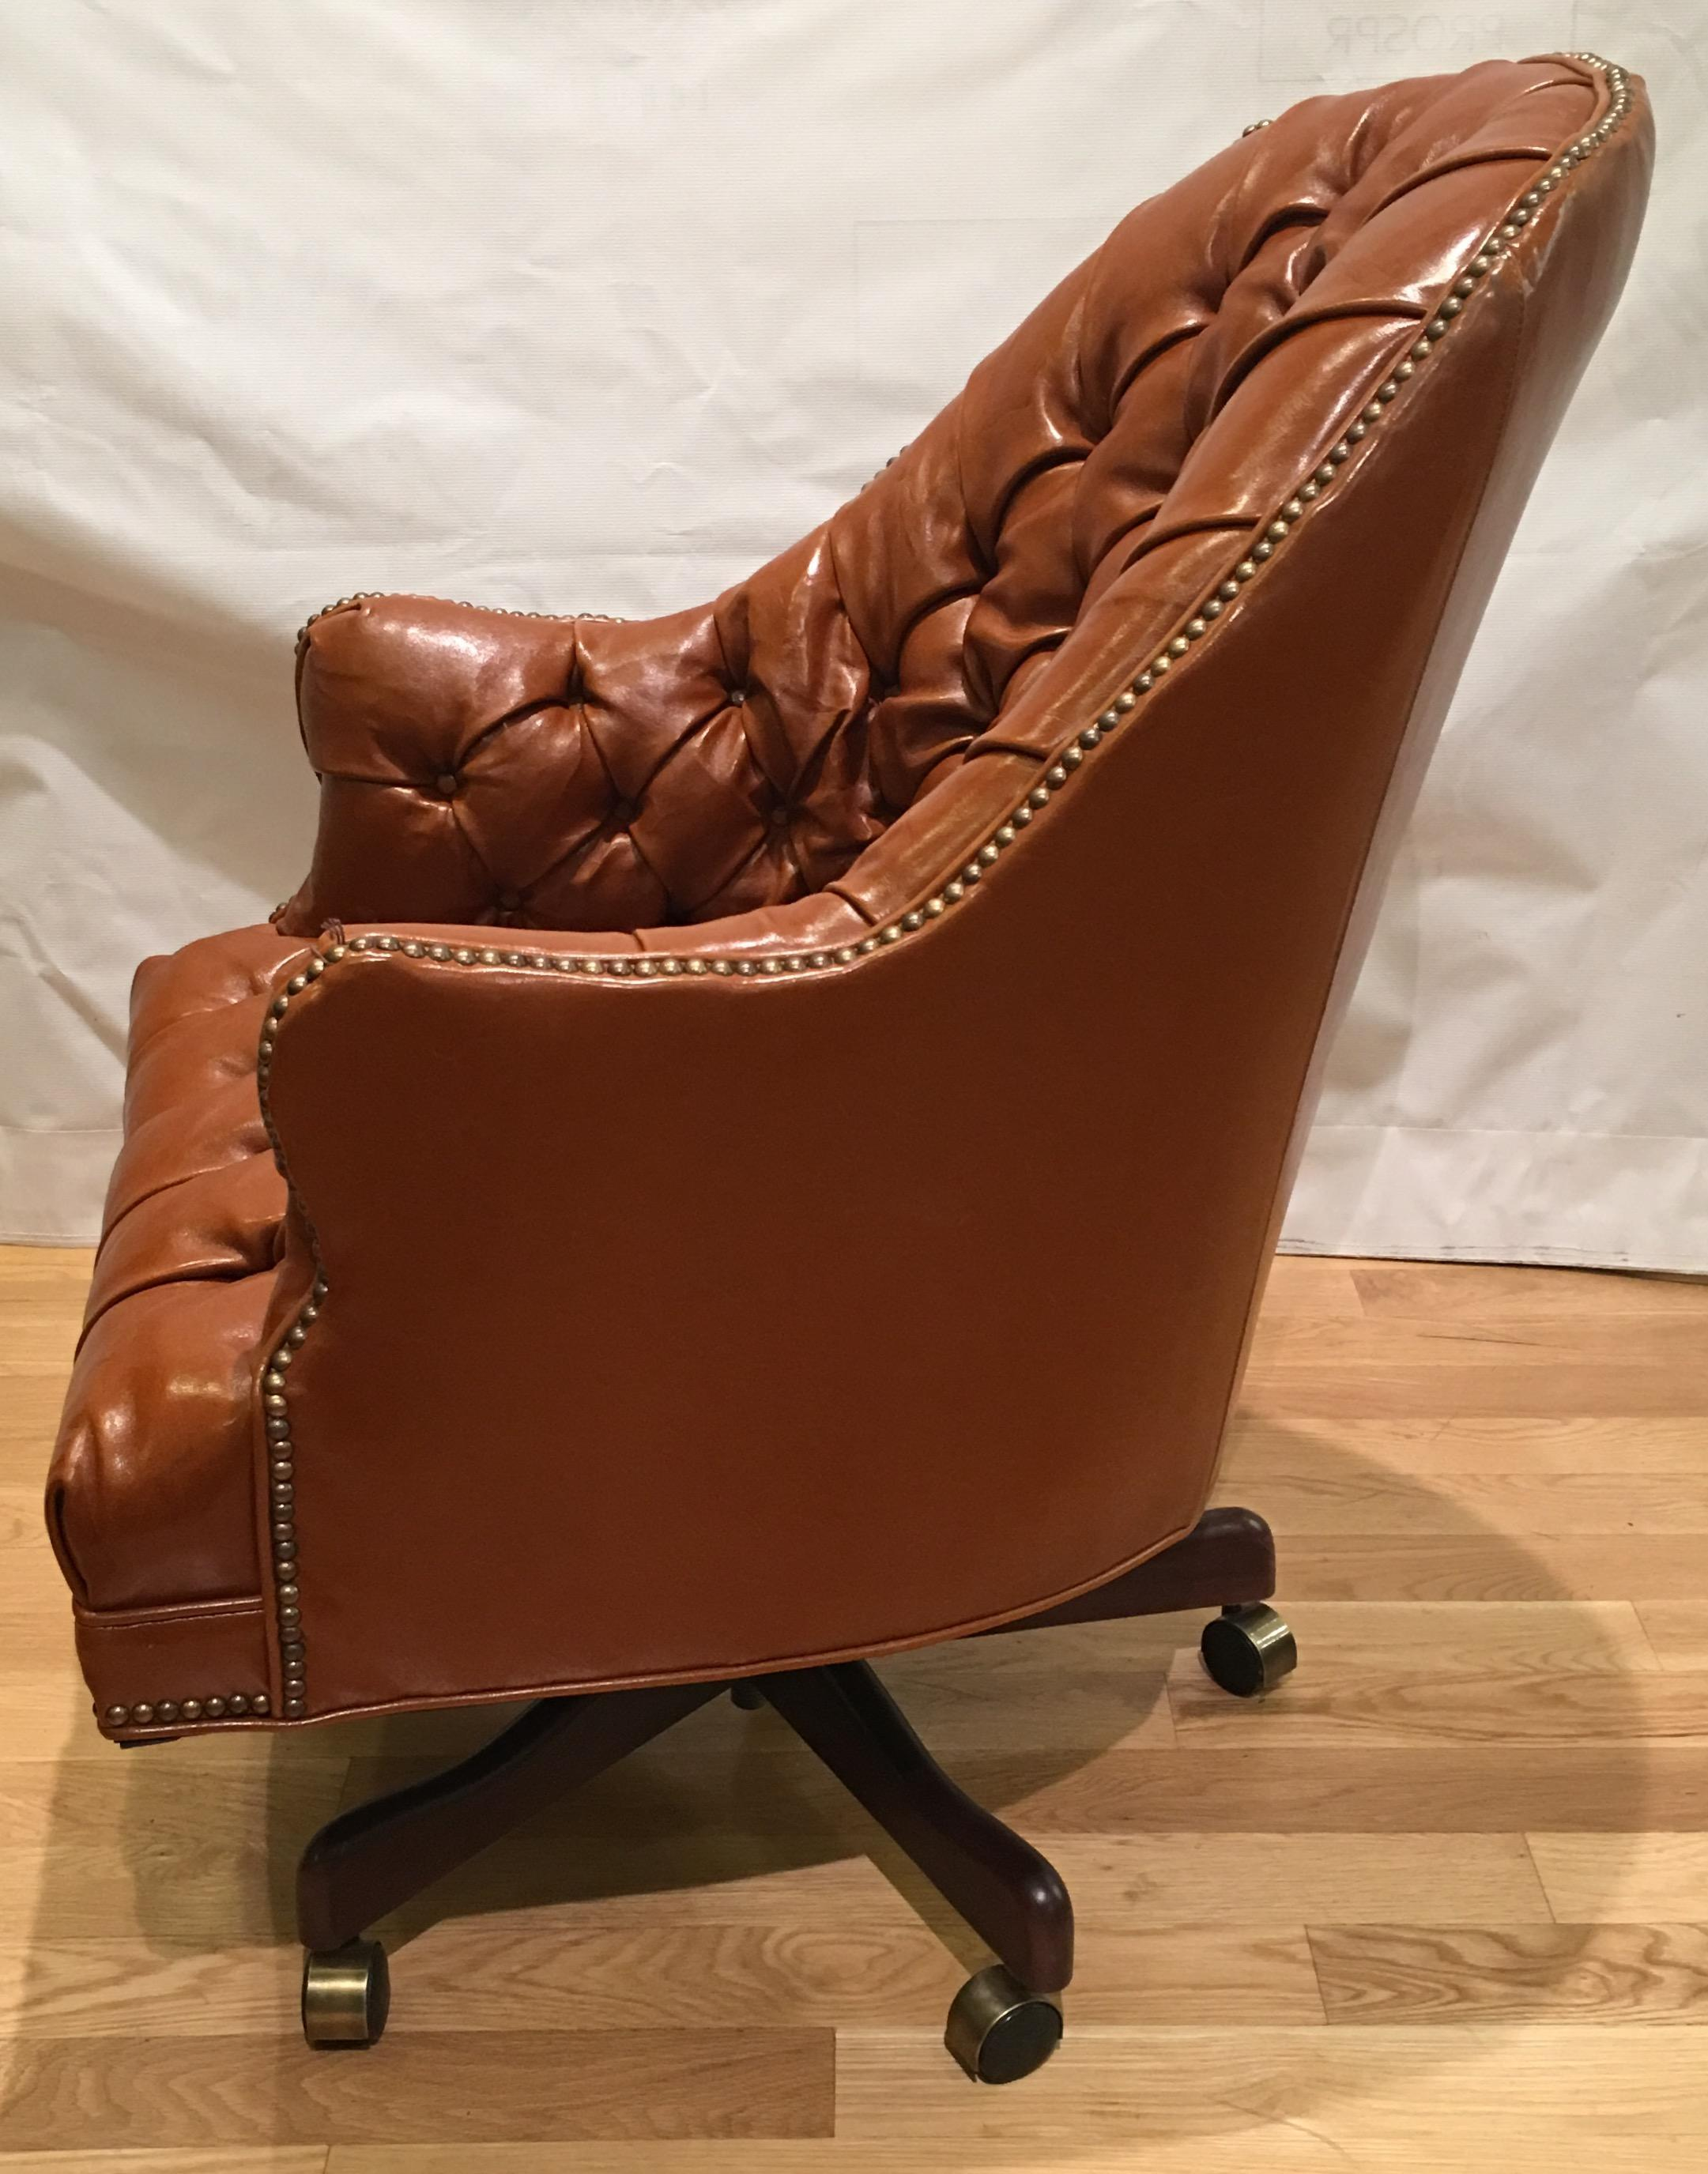 Old Hickory Tannery Leather Chesterfield Desk Chair Chairish : b12fc84b 3de1 440d 86e5 b4b1b3de2903aspectfitampwidth640ampheight640 Chesterfield <strong>Loveseat Sale</strong> from www.chairish.com size 640 x 640 jpeg 43kB